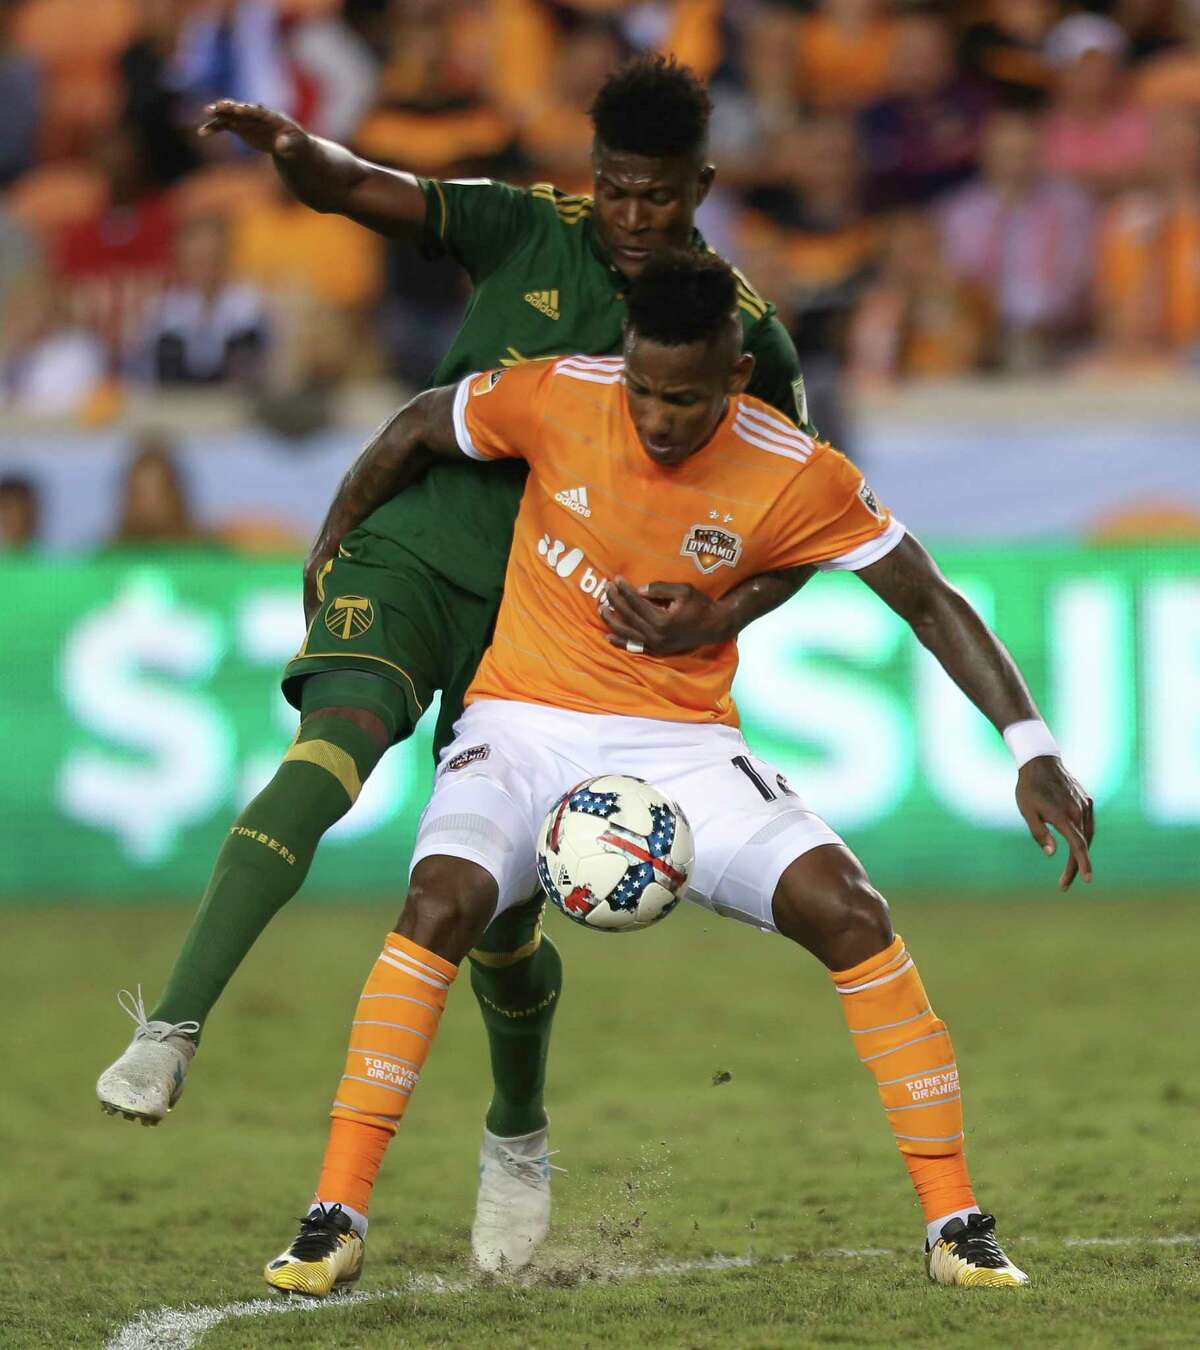 Neither team would give an inch in the first leg of the aggregate Monday night, with the Dynamo's Romell Quioto, right, and the Timbers' Dairon Asprilla effectively tying each other up.